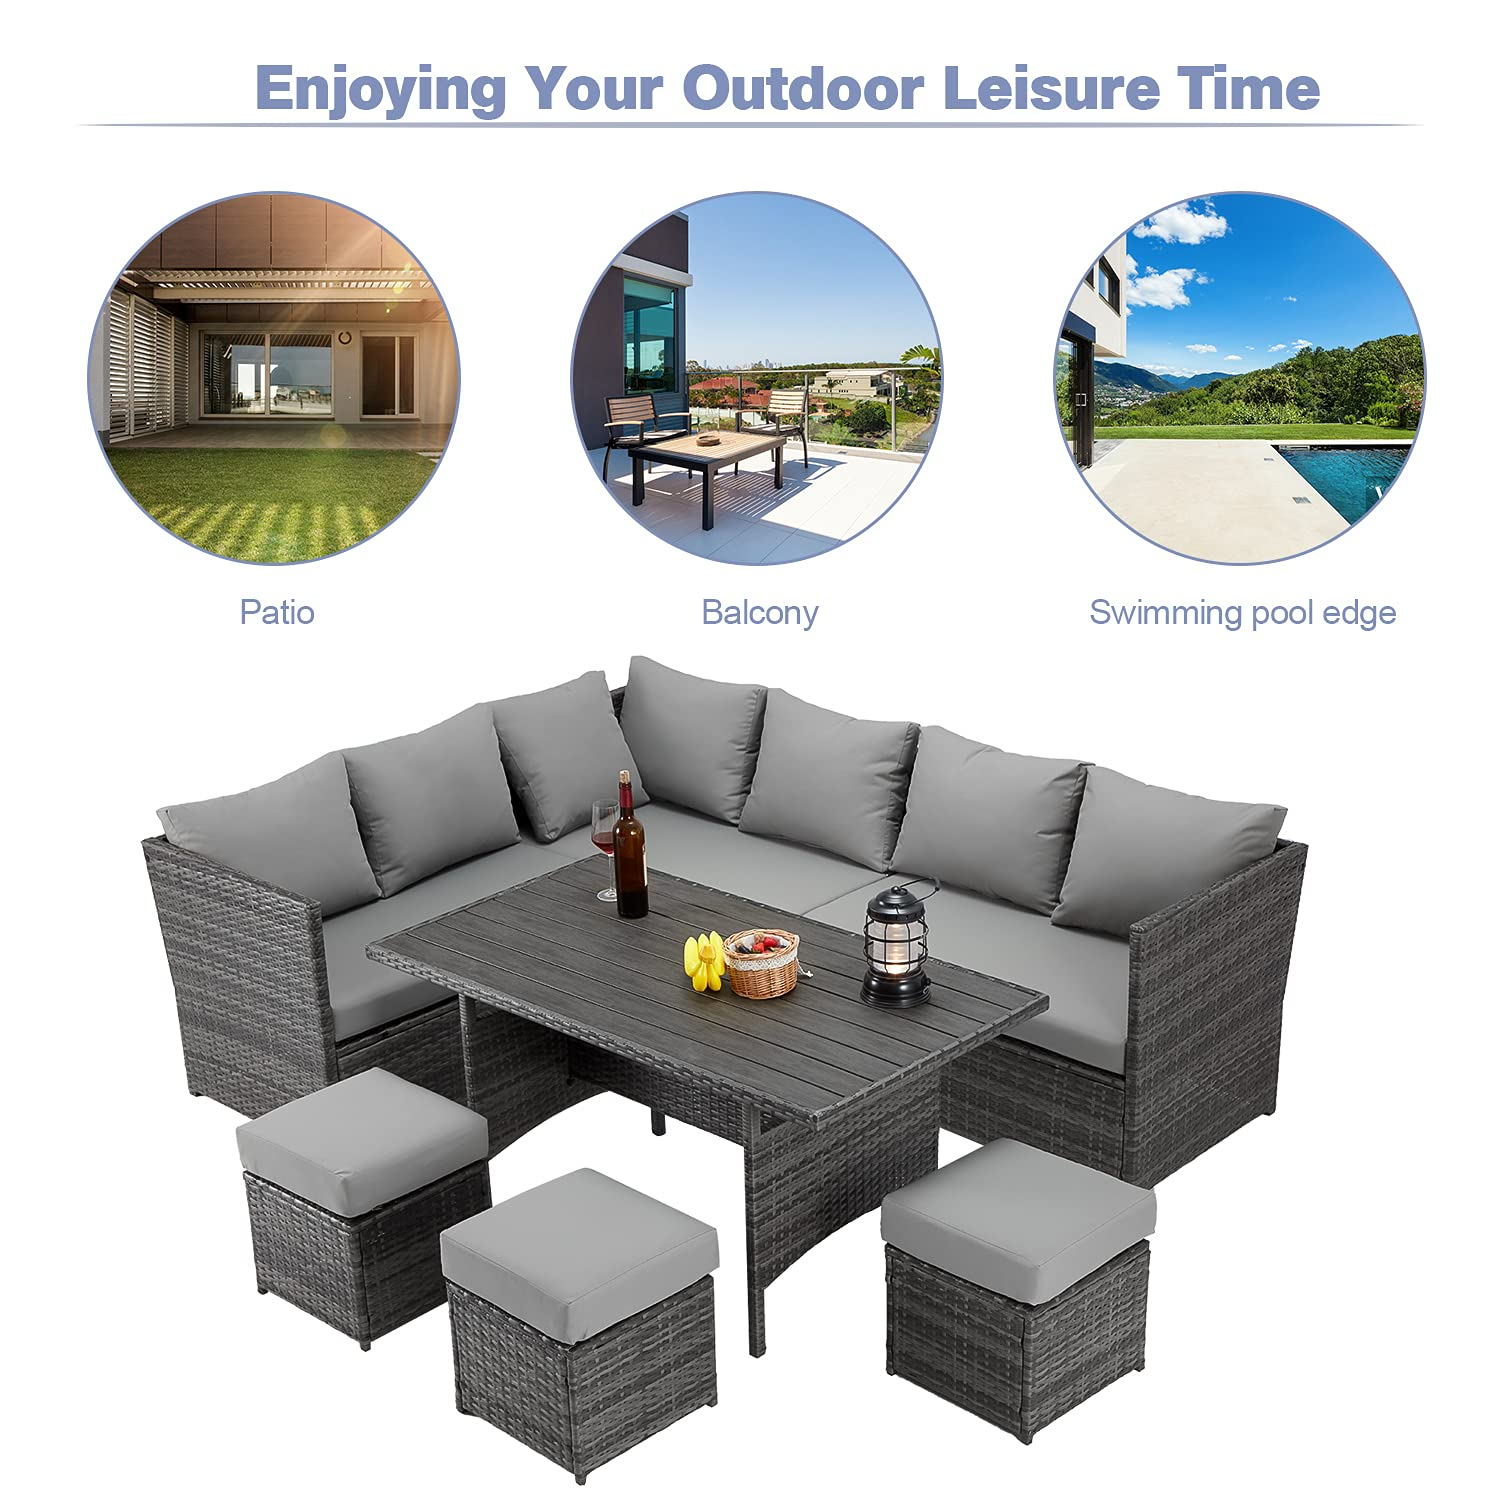 U-MAX 7 Pieces Outdoor Patio Furniture Set,Wicker Patio Furniture Set with Table and Chair, Outdoor Furniture Sets Clearance,Grey Rattan Outdoor Sectional with Grey Cushion